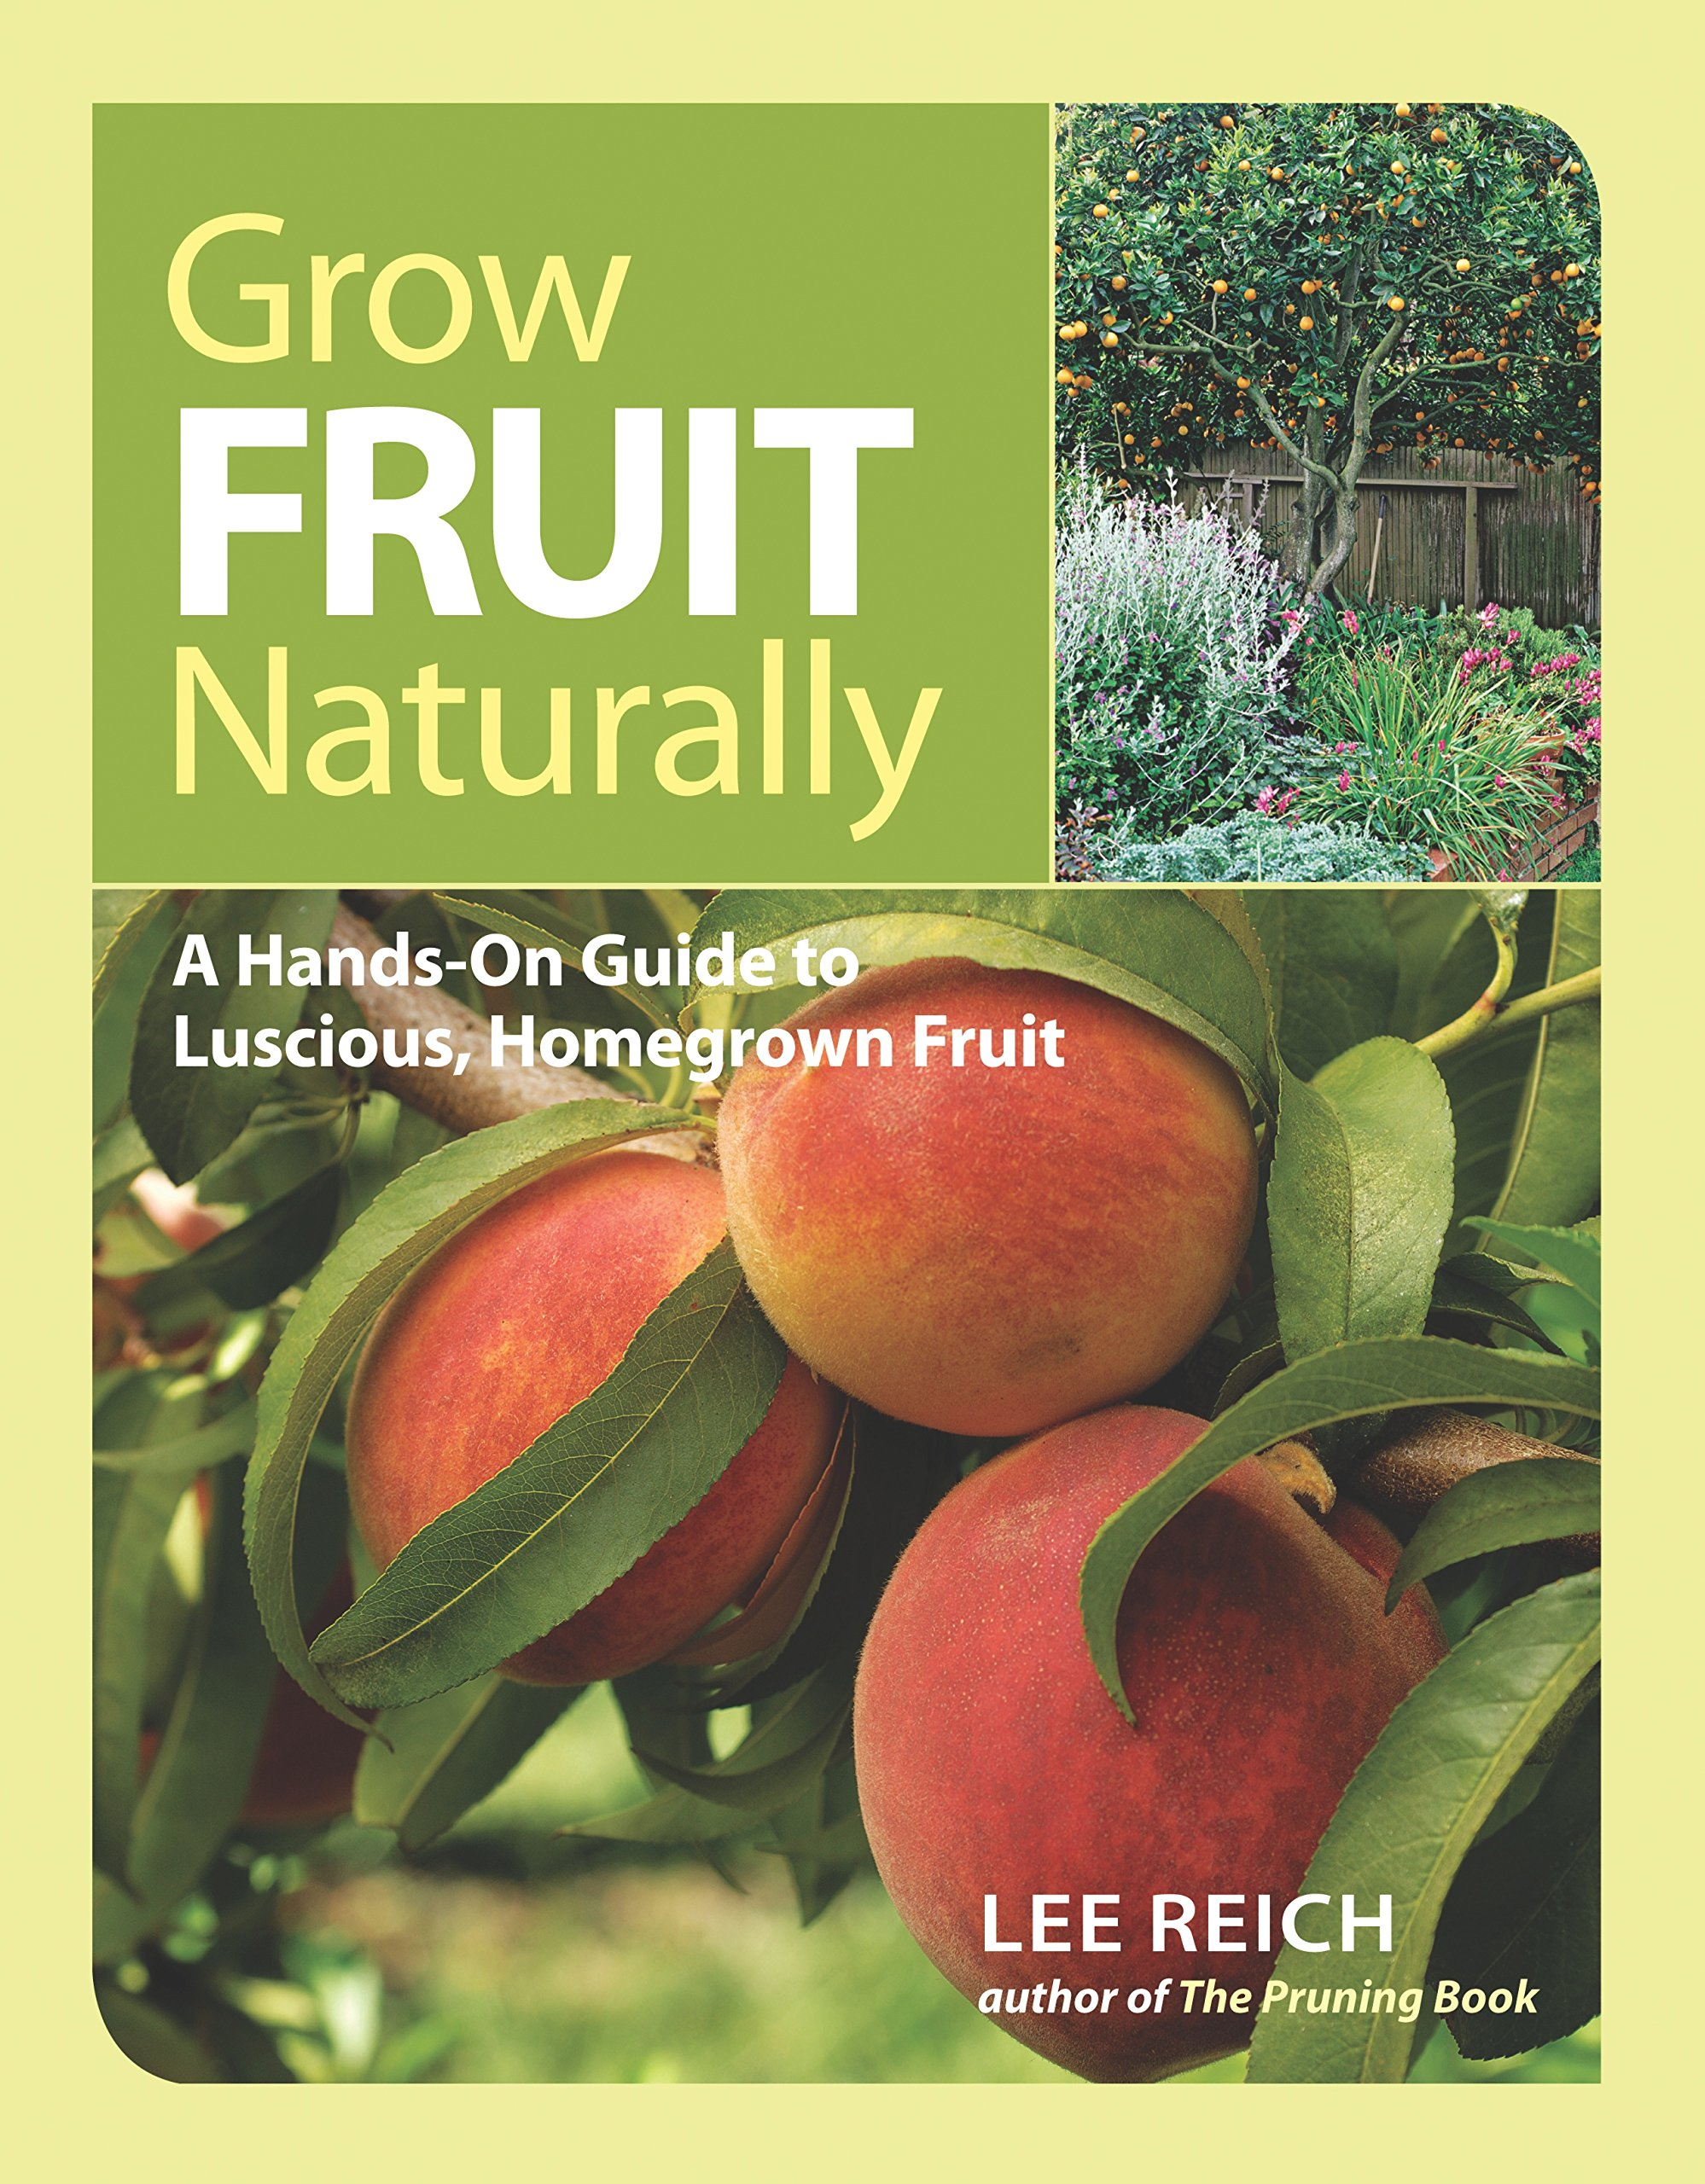 Grow Fruit Naturally: A Hands-On Guide to Luscious, Homegrown Fruit ...